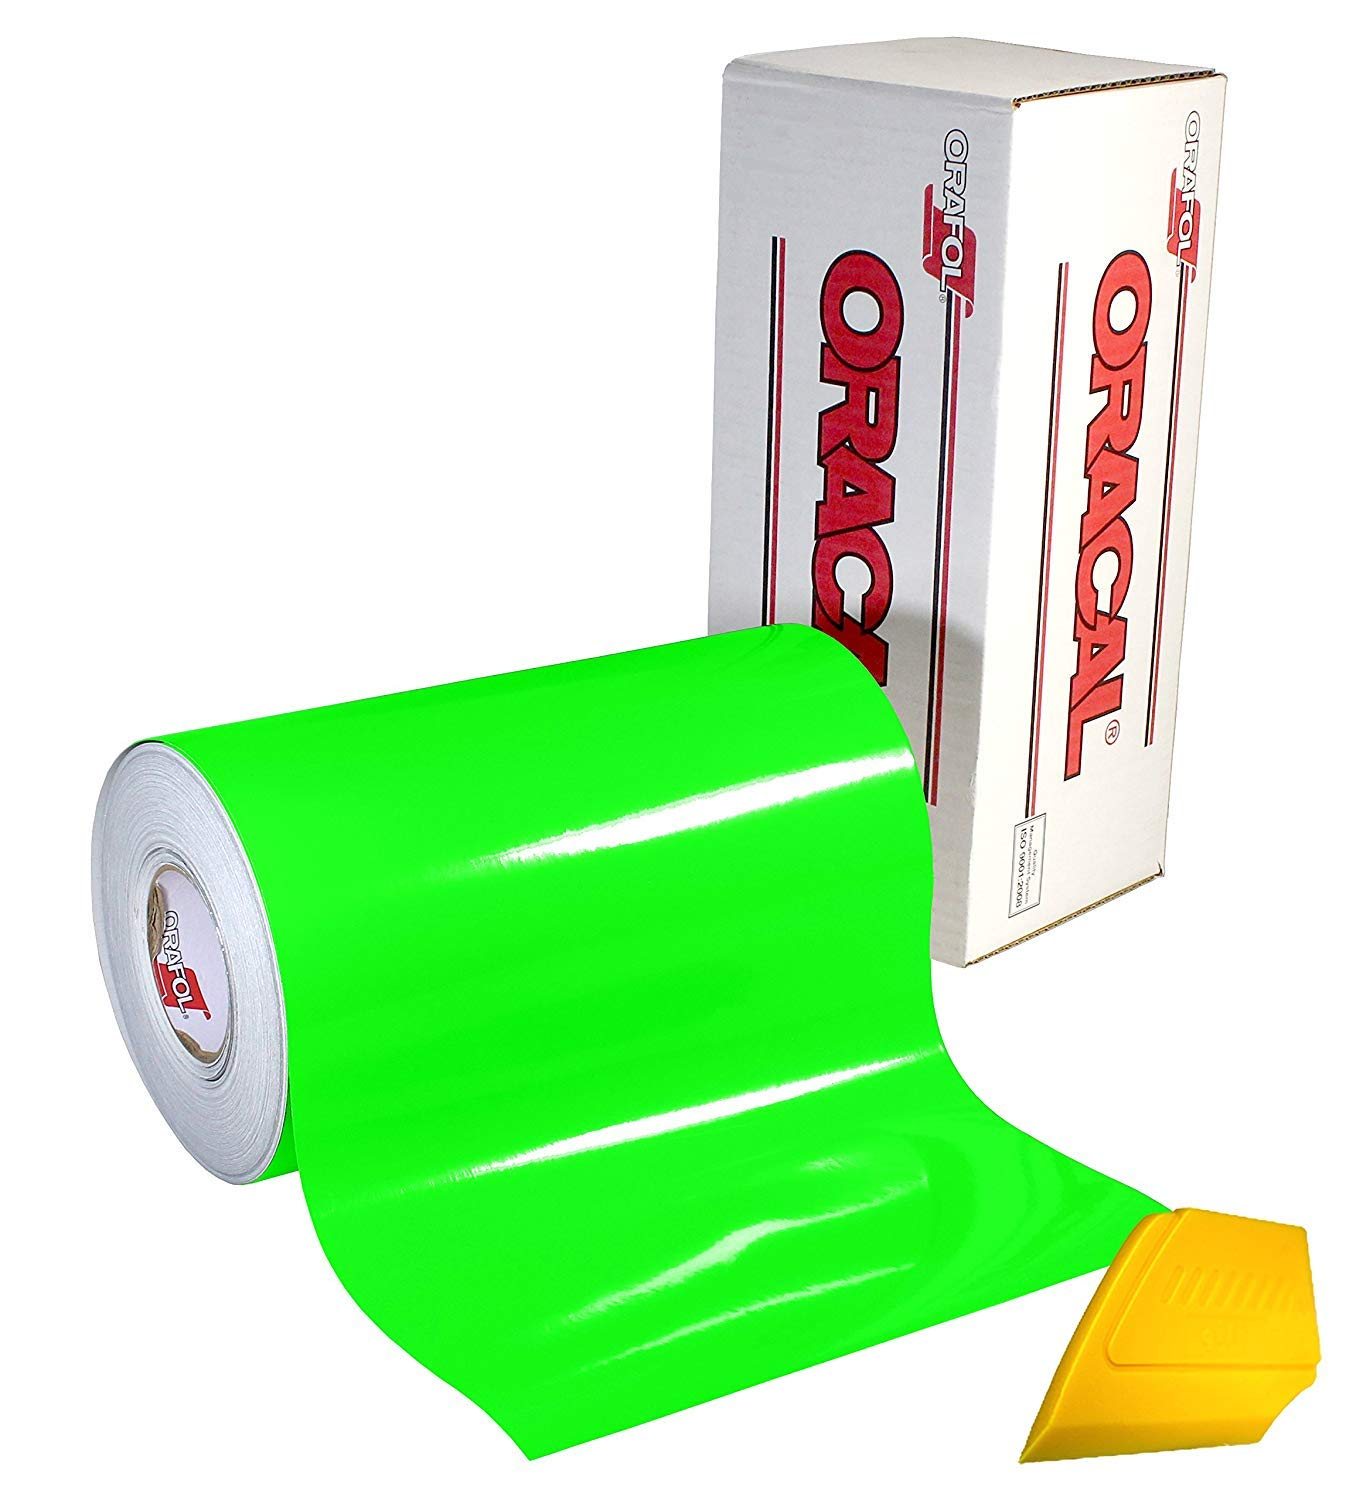 Orafol Oracal 6510 Fluorescent Green Cast Vinyl Wrap 12 X 24 Roll For Cricut Silhouette Cameo Including Hard Yellow Detailer Squeegee 1 Roll